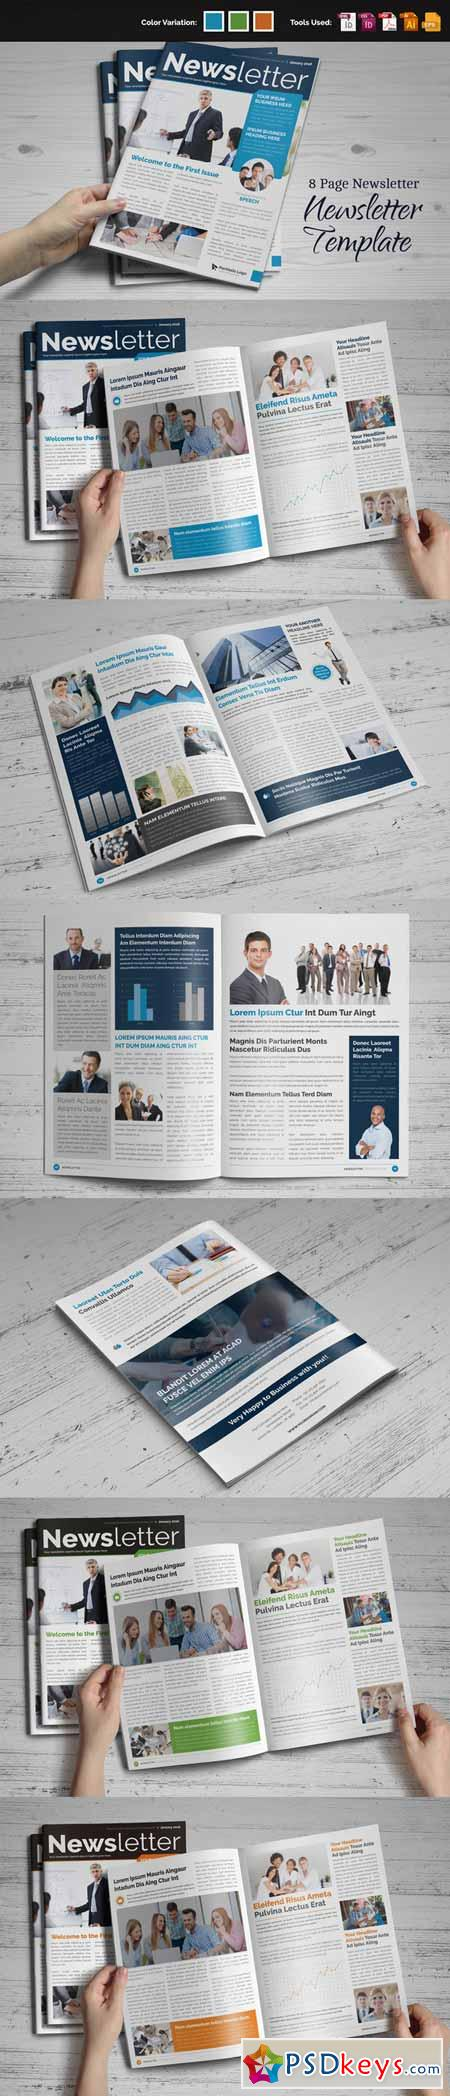 Newsletter Indesign Template 464762 » Free Download Photoshop ...